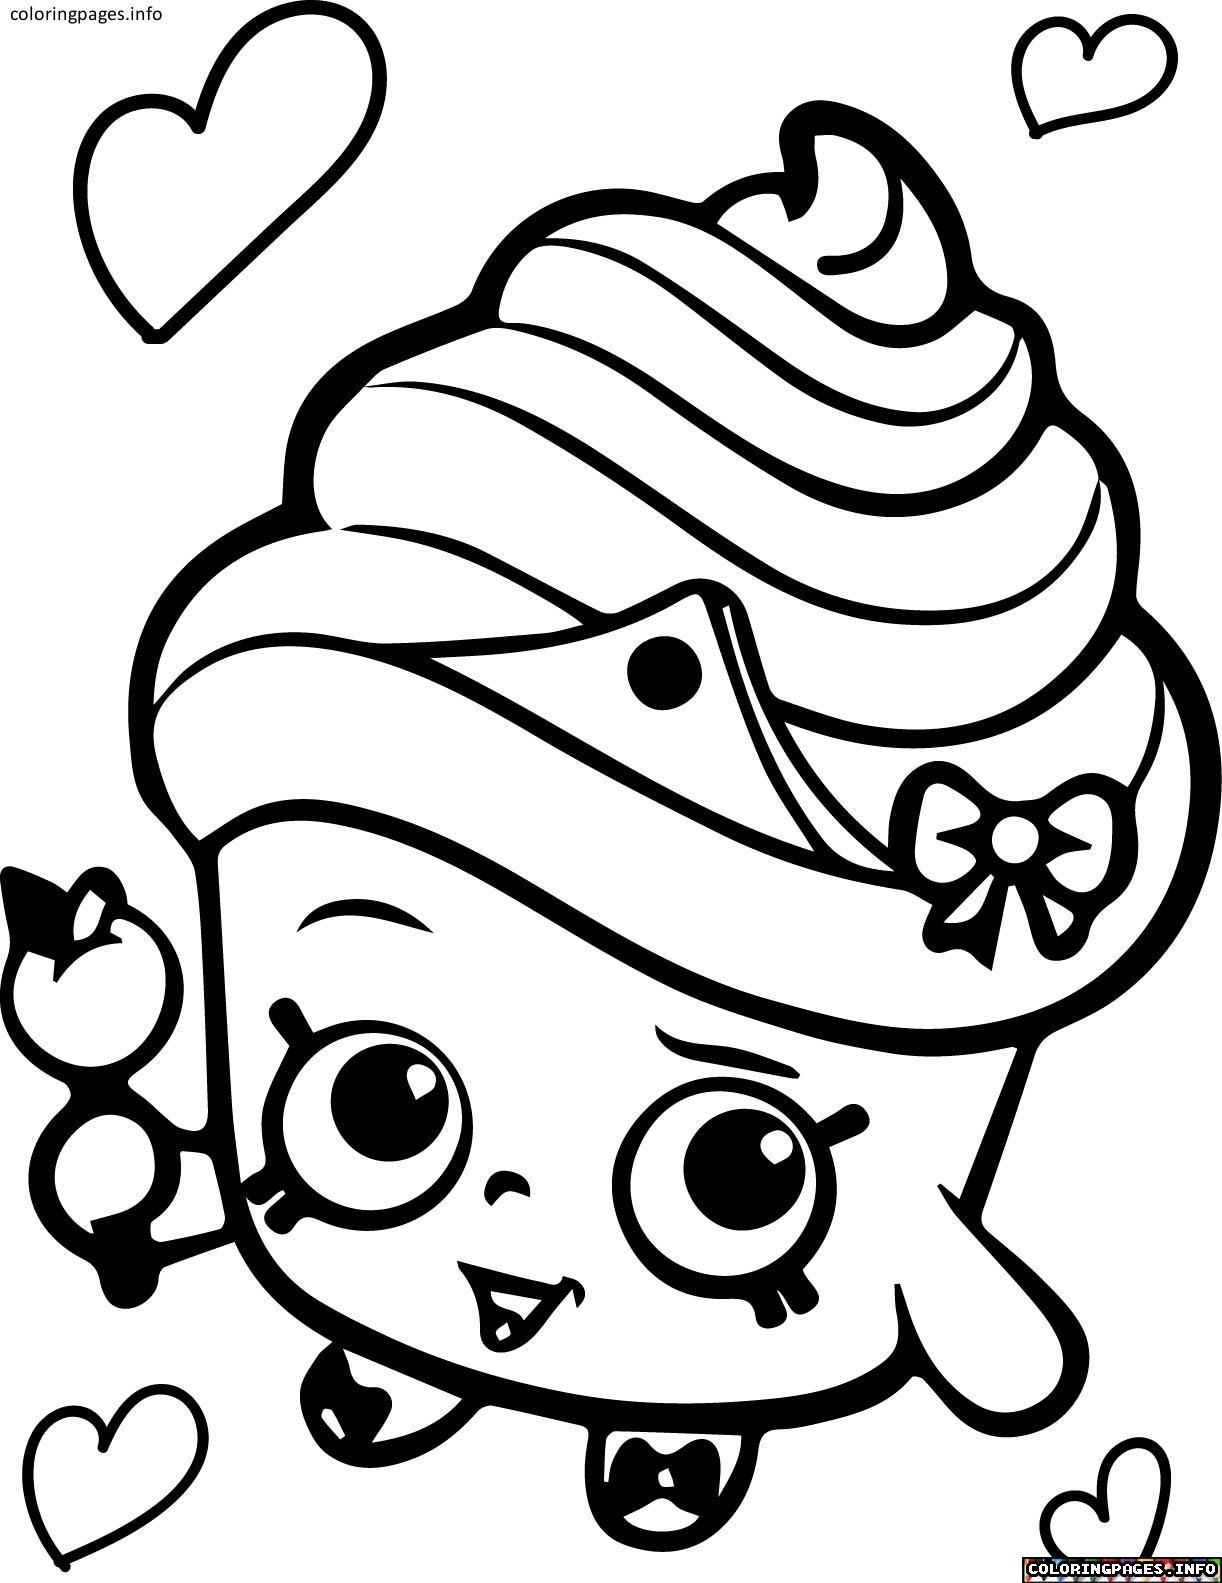 Pin By Brandi Mosca On Coloring Shopkins Colouring Pages